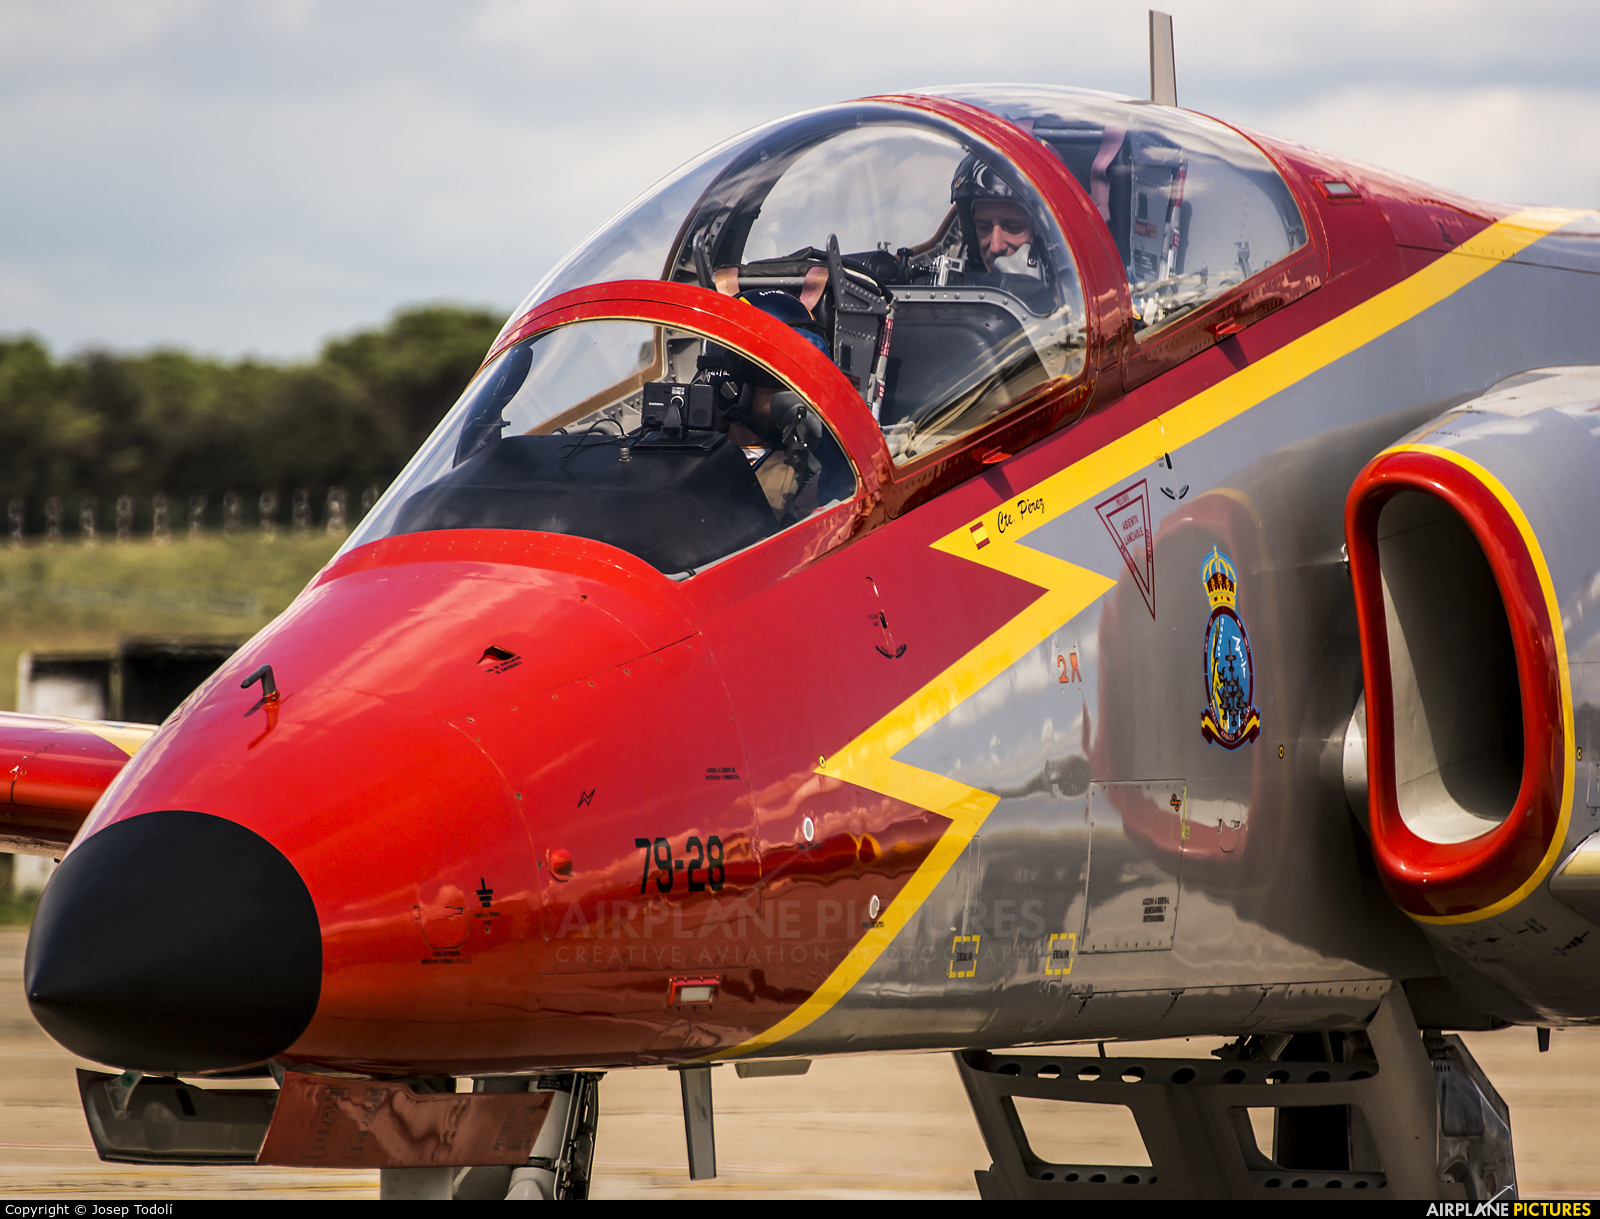 Spain - Air Force : Patrulla Aguila E.25-28 aircraft at Off Airport - Spain